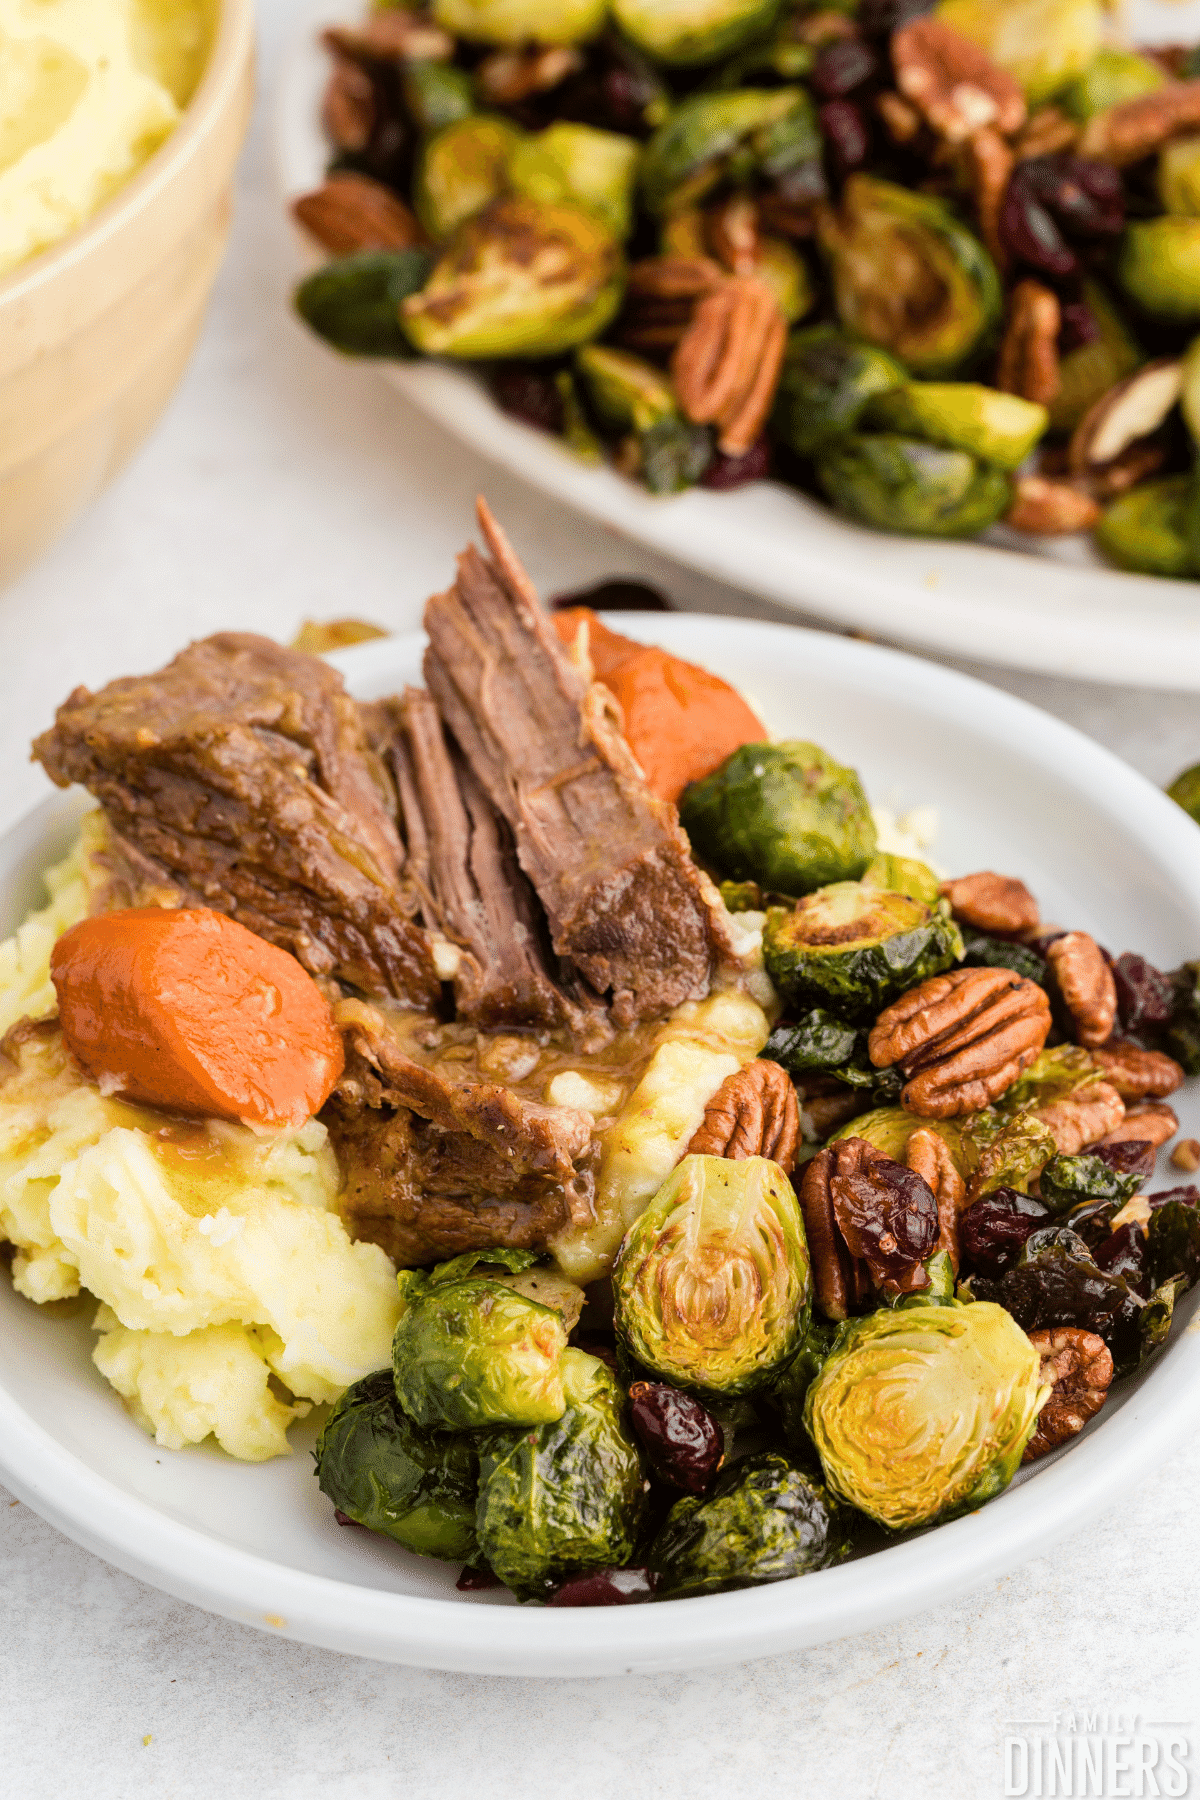 pot roast on a bed of mashed potatoes, carrots and brussels sprouts